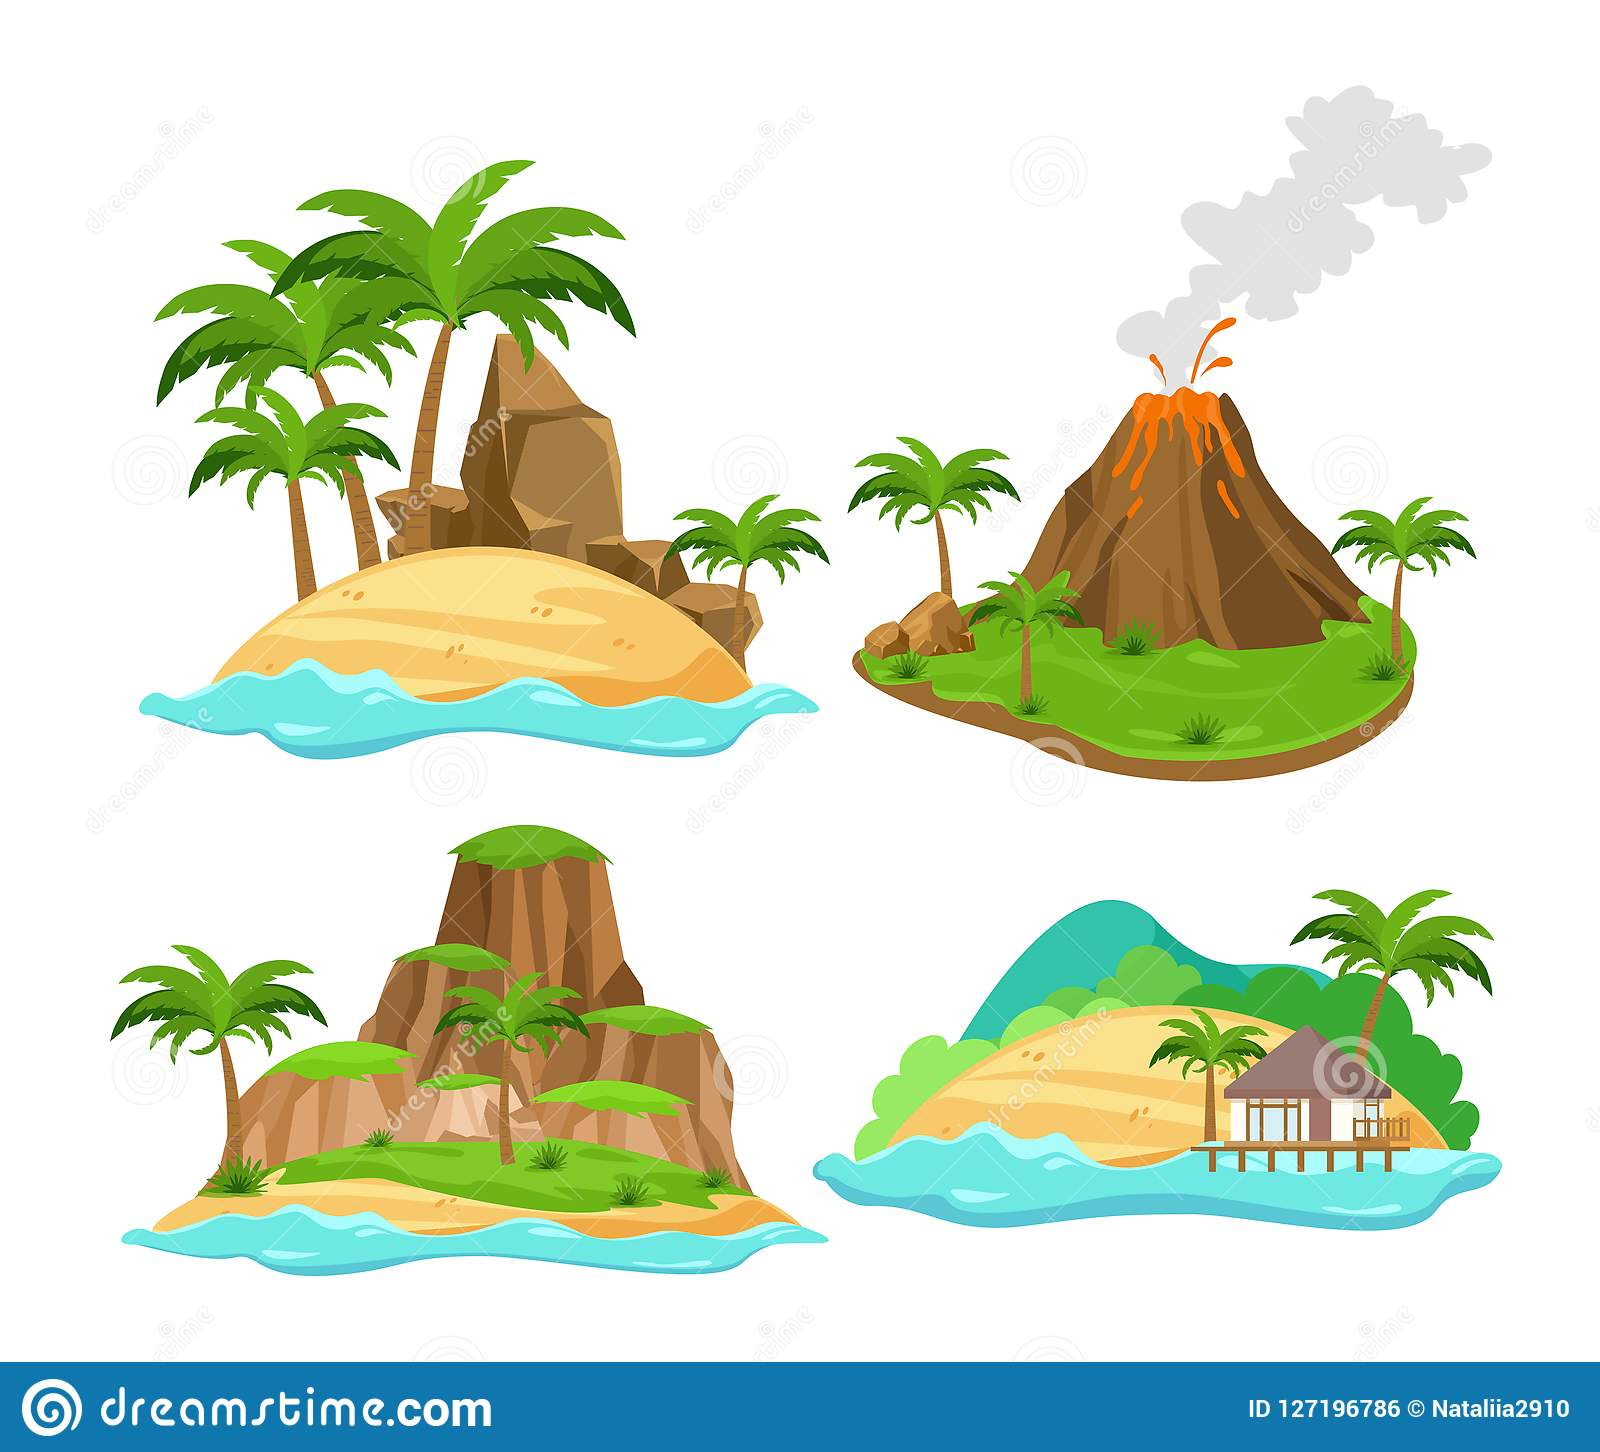 Vector illustration set of different scenes of tropical islands with palm trees and mountains, volcano isolated on white